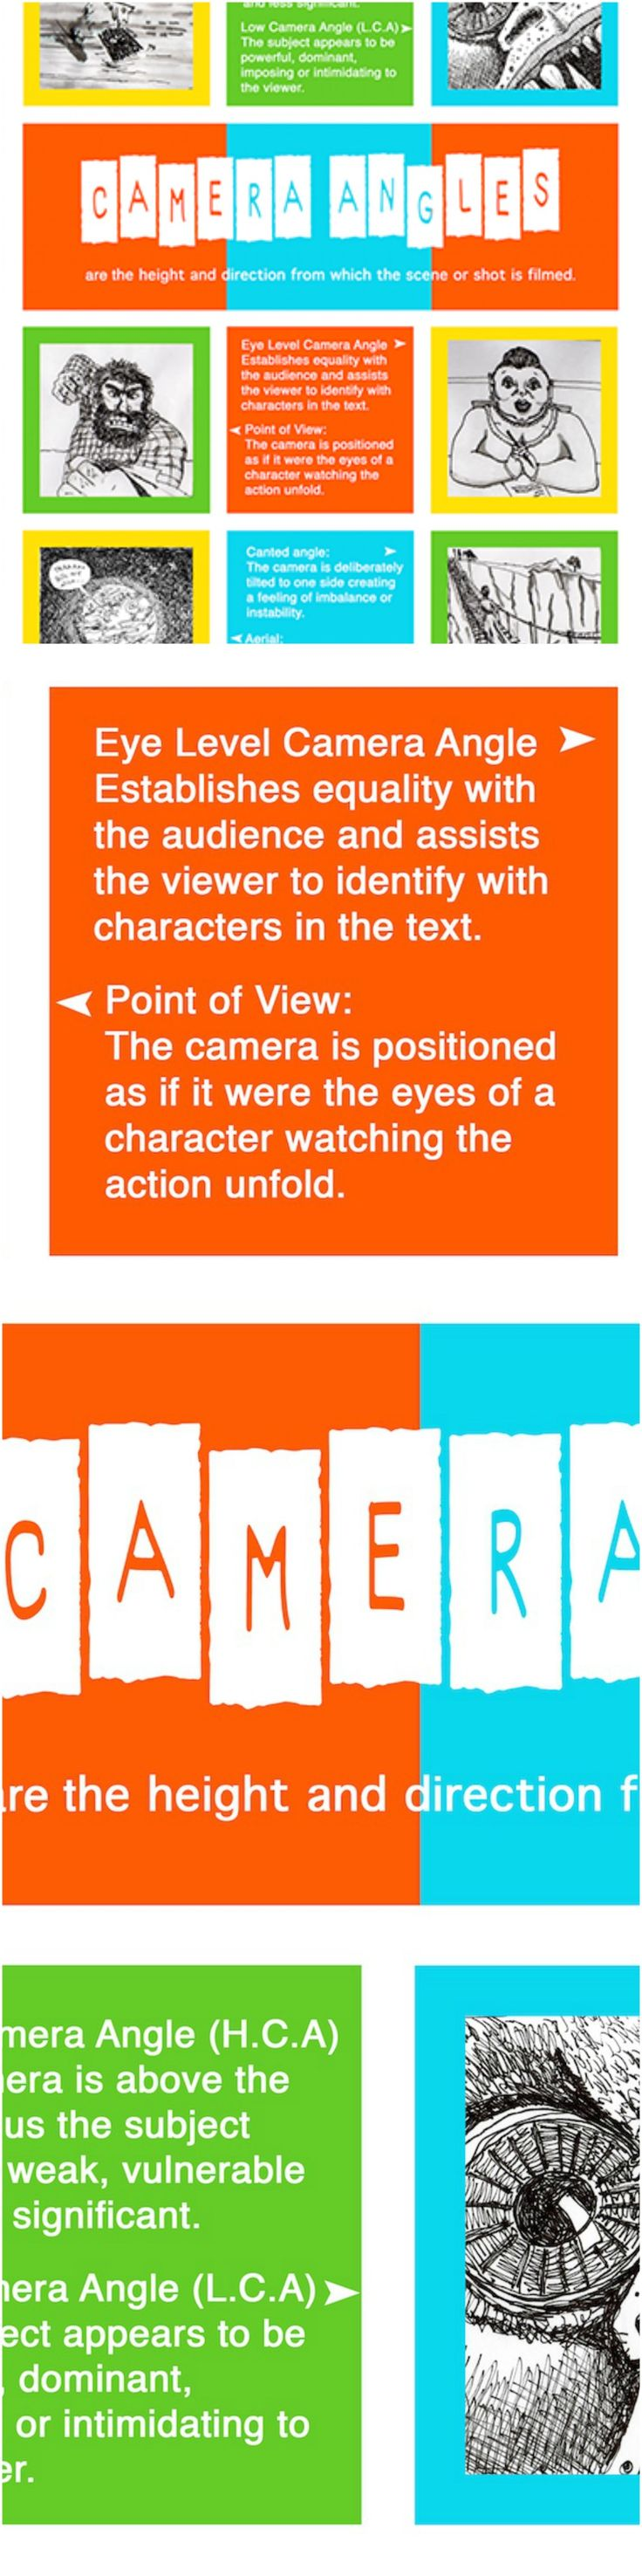 Camera Angles poster useful for teaching Media Literacy to junior, middle and senior high school students. Available in my TpT store along with Shot Sizes poster. Print out as a classroom wall poster or individual handouts. Available at: https://www.teacherspayteachers.com/Store/Media-And-English-Literacy